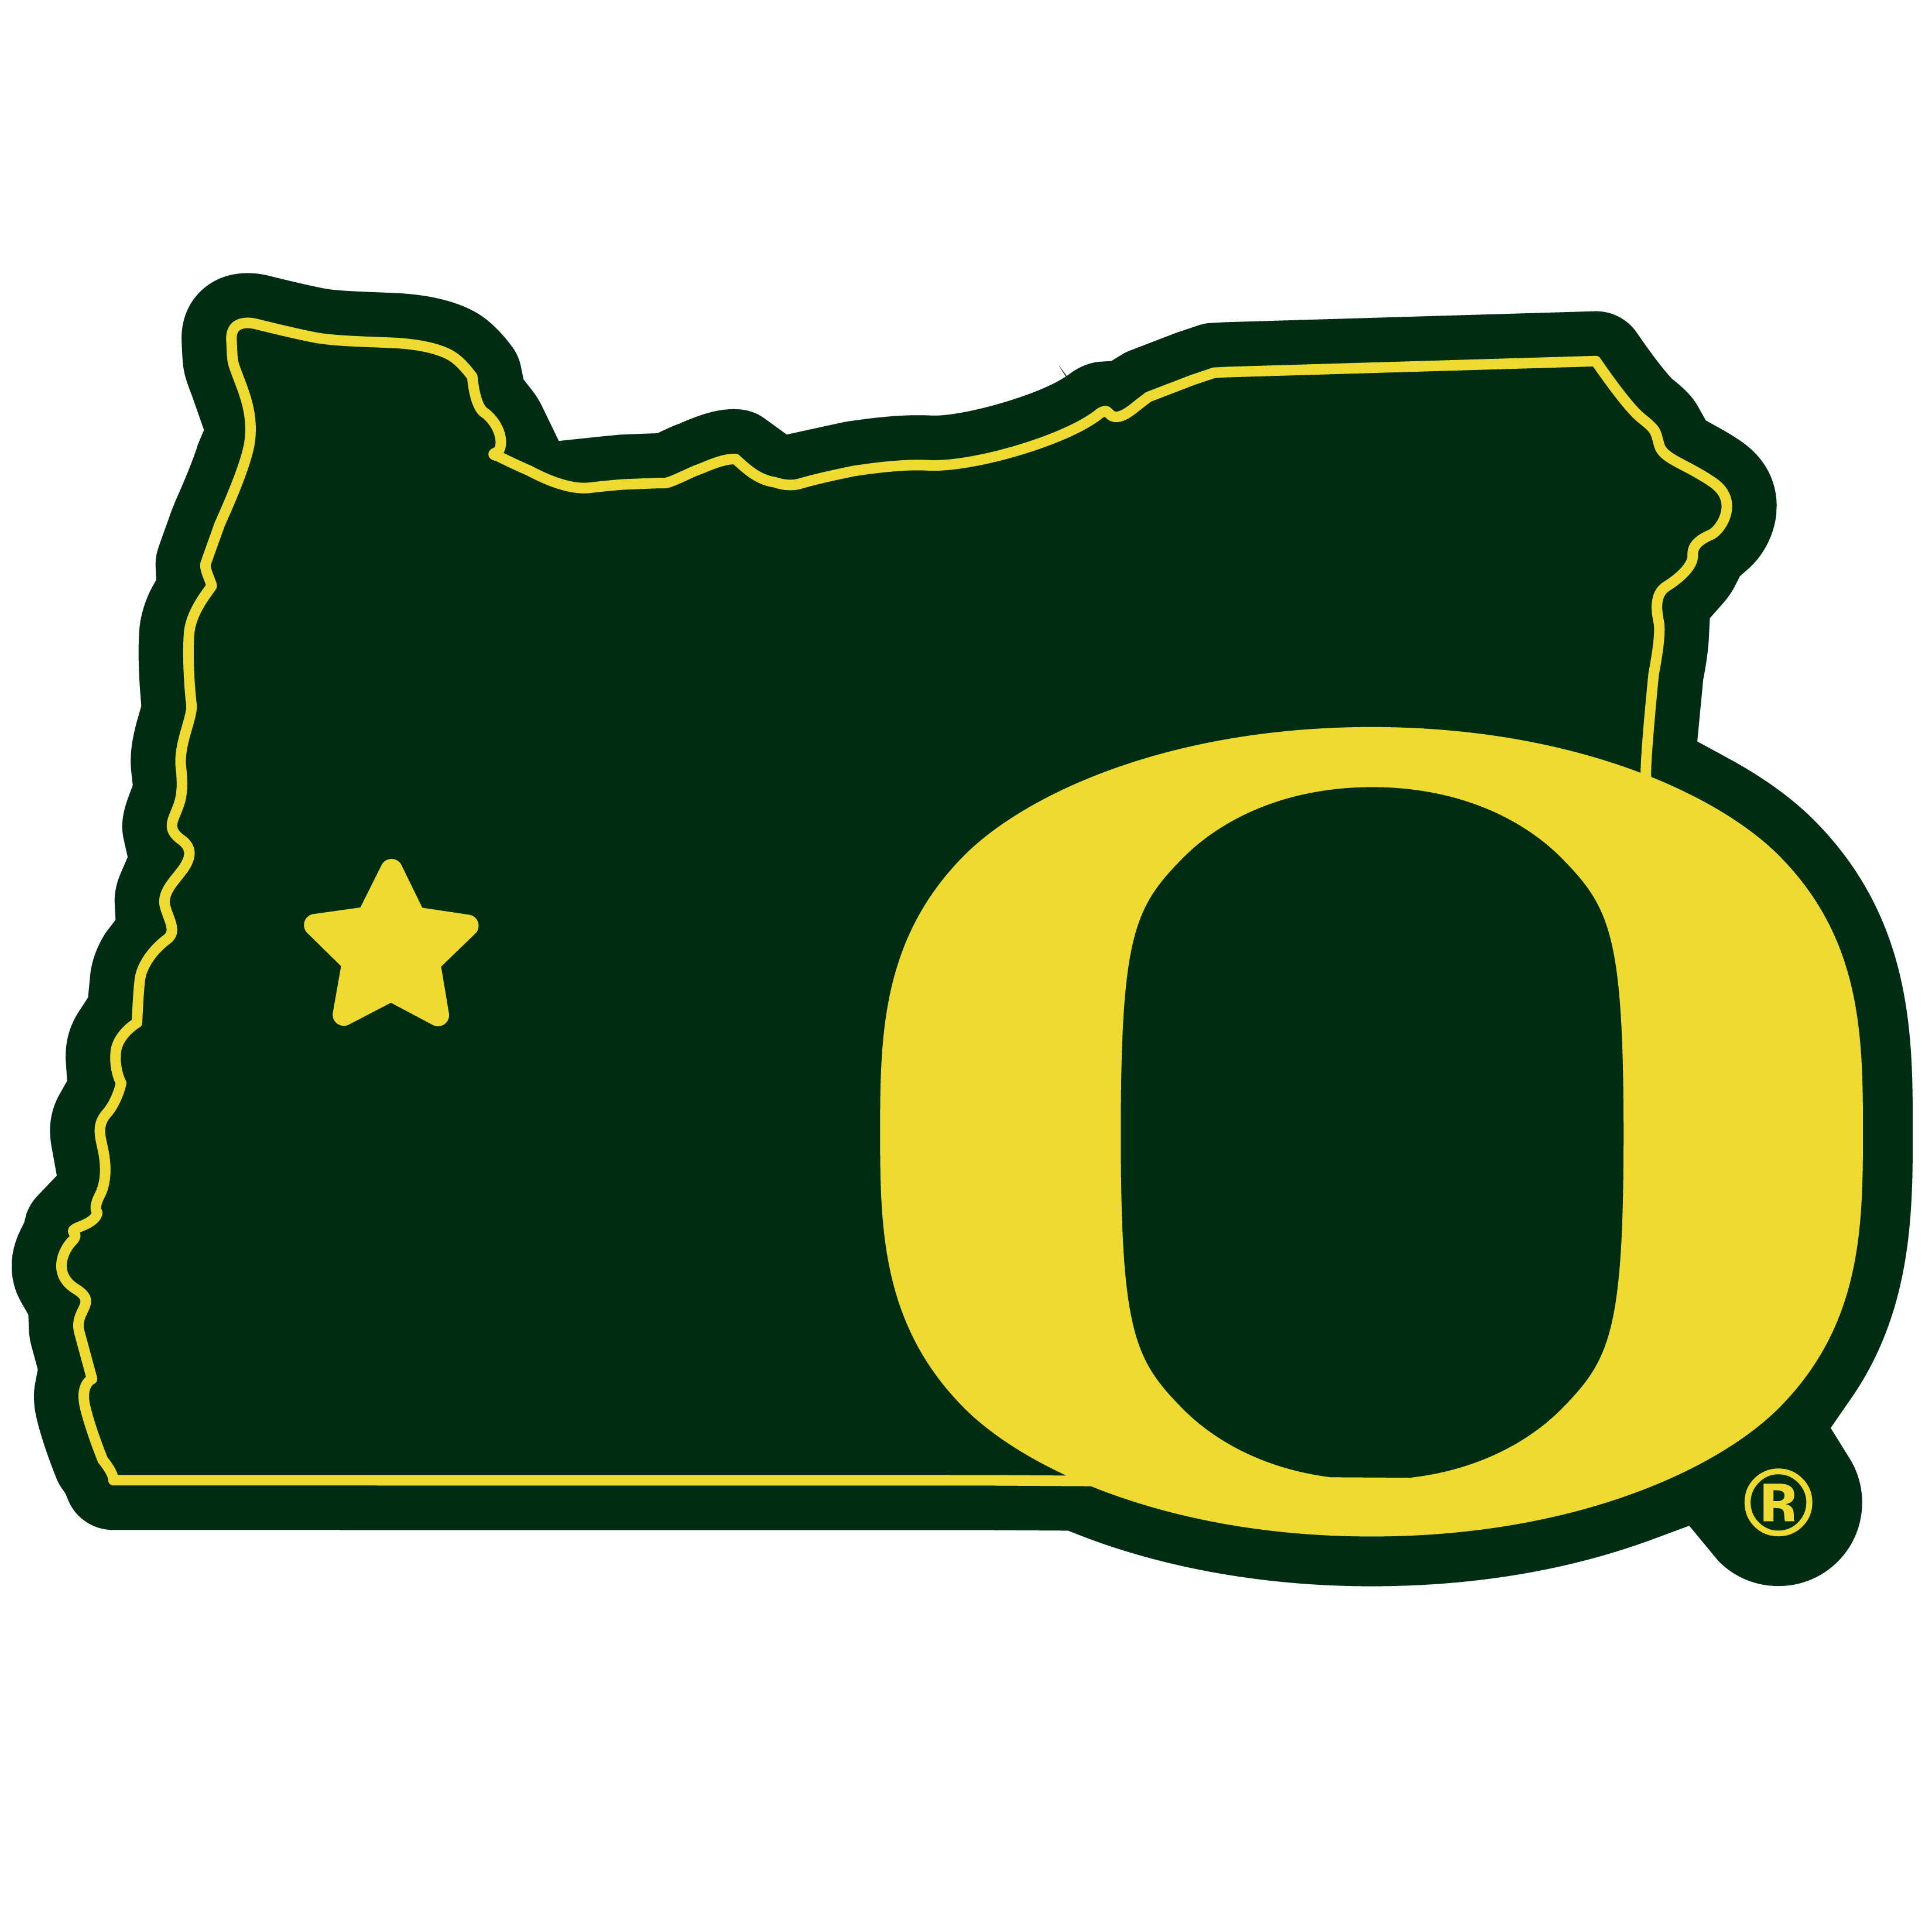 Oregon Ducks Home State 11 Inch Magnet - Whether you are caravaning to the game or having a tailgate party make sure you car is wearing its fan gear with our extra large, 11 inch Oregon Ducks home state magnets. These striking magnets can be easily placed on for game day and removed without he residue left by decals. The design features a bright state outline with the location of the team highlighted with a football and a large team logo.